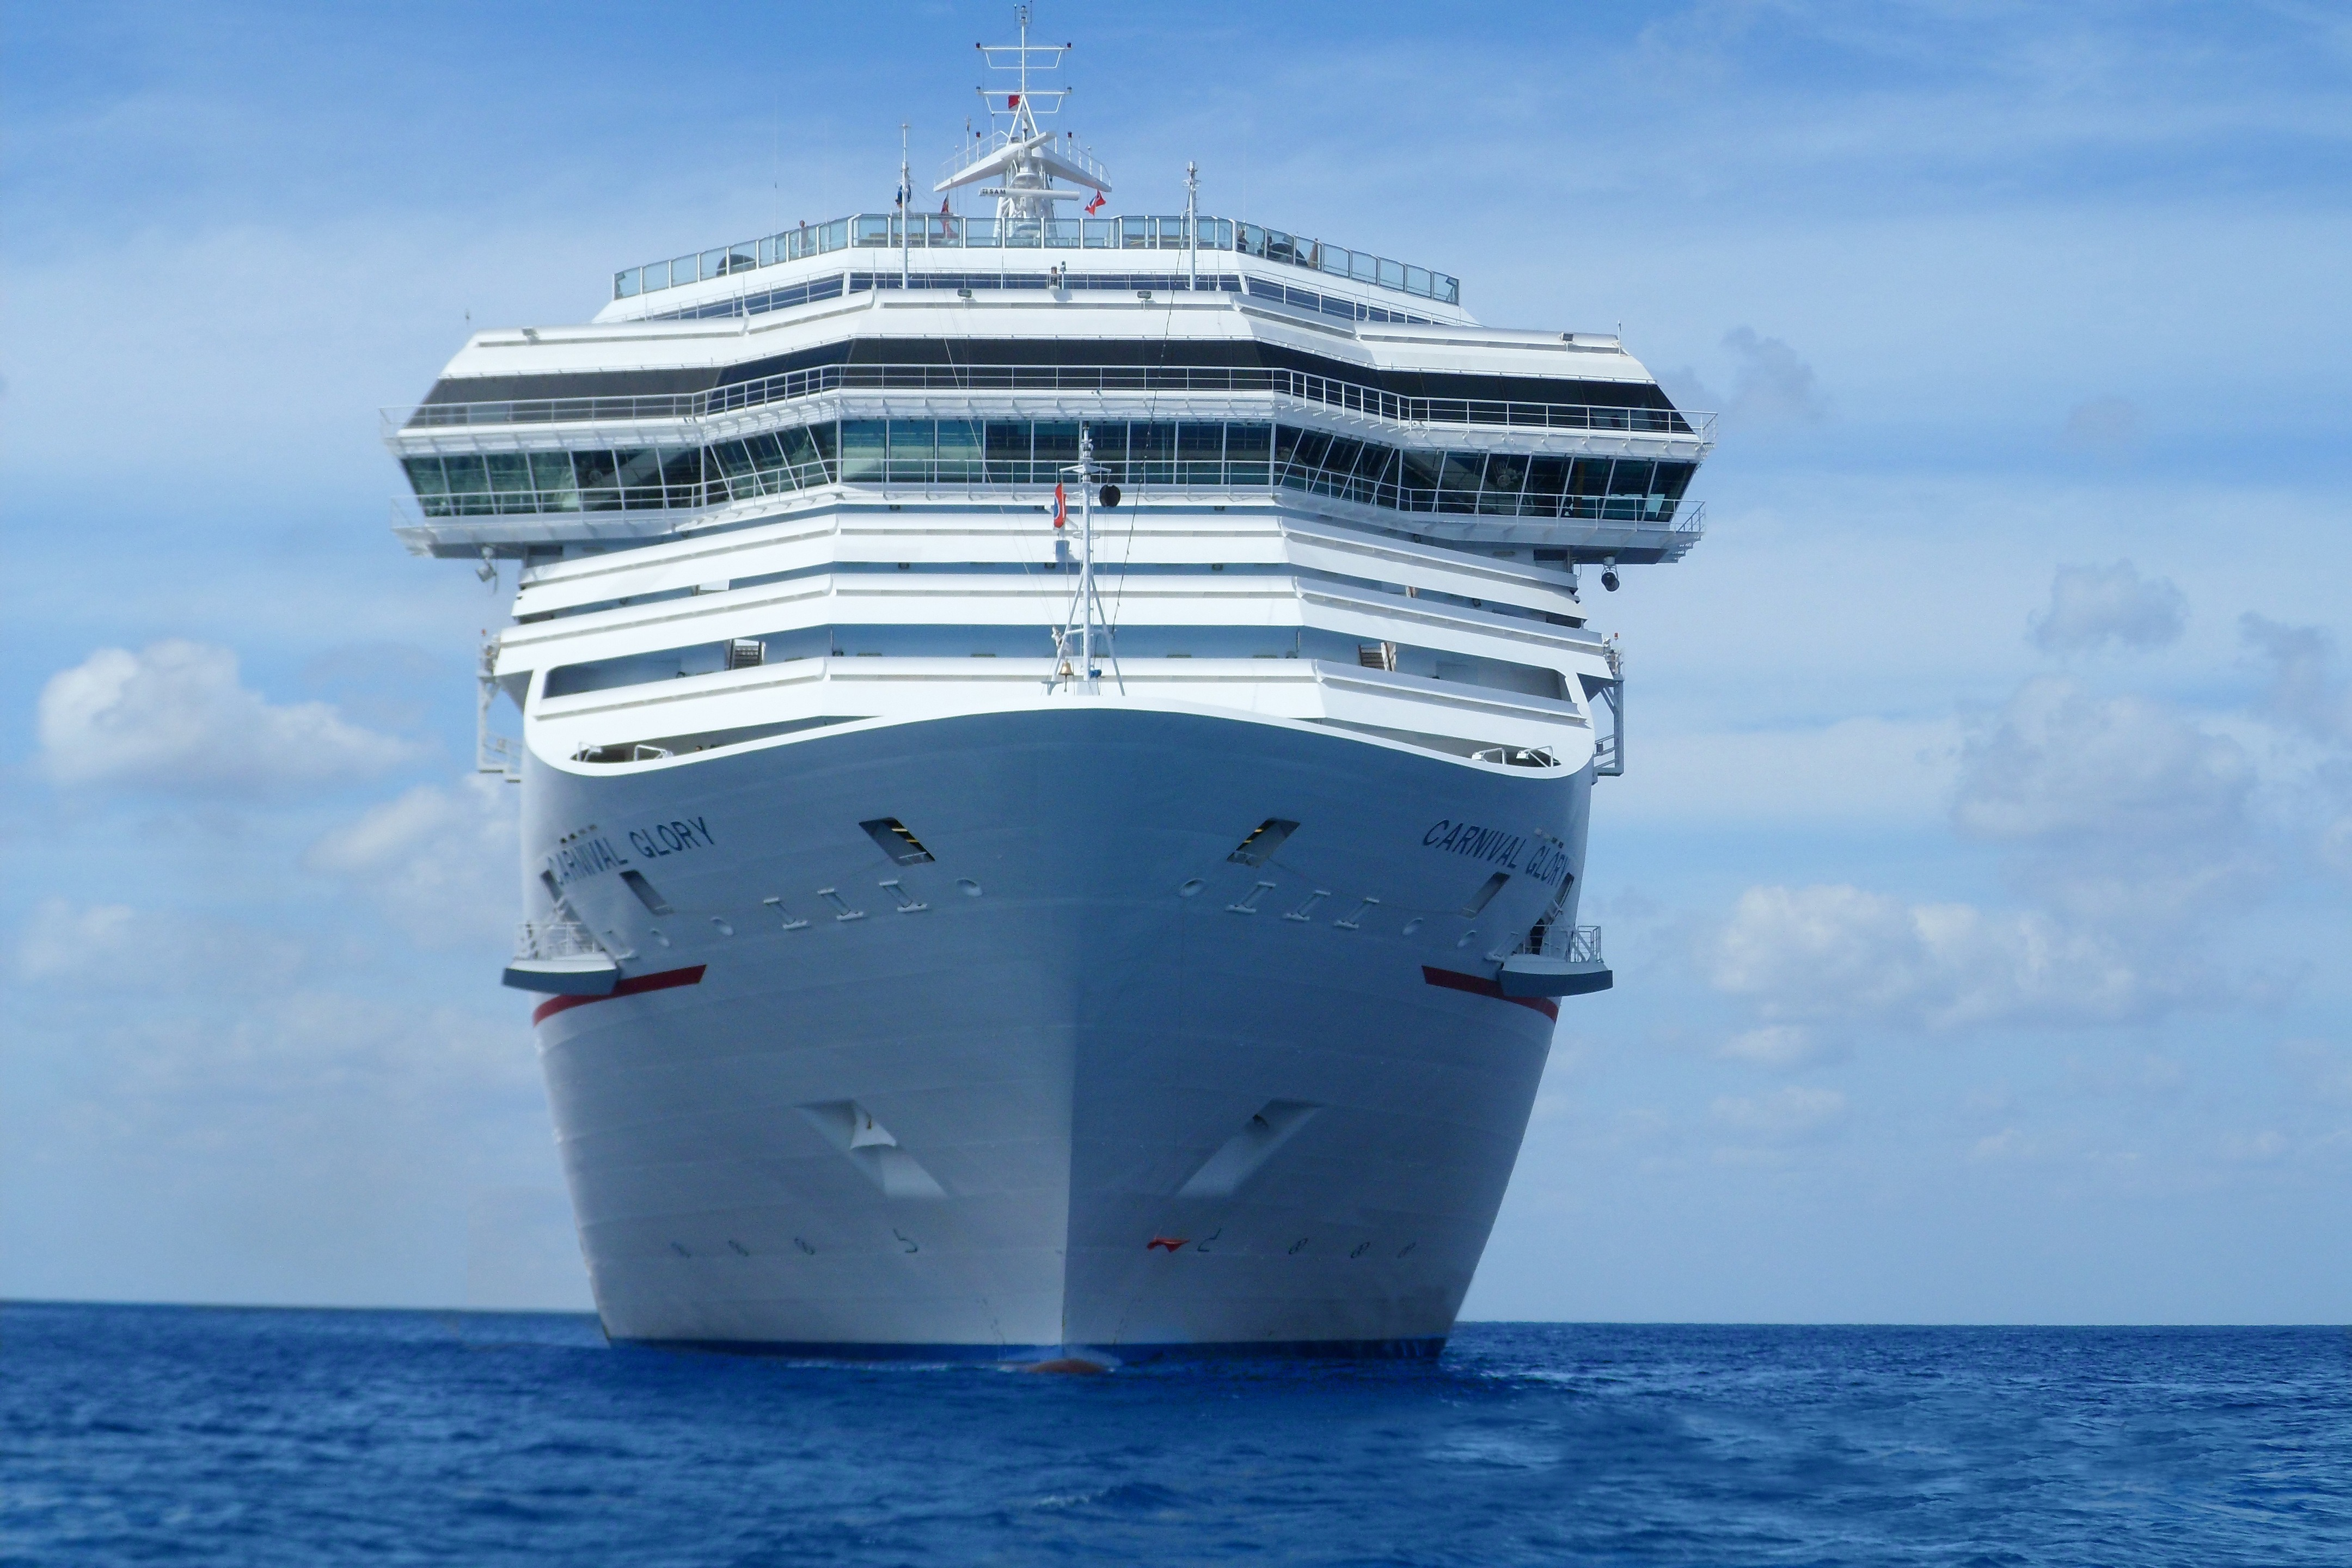 Free Stock Photos Of Cruise Ship Pexels - Cruise ship images